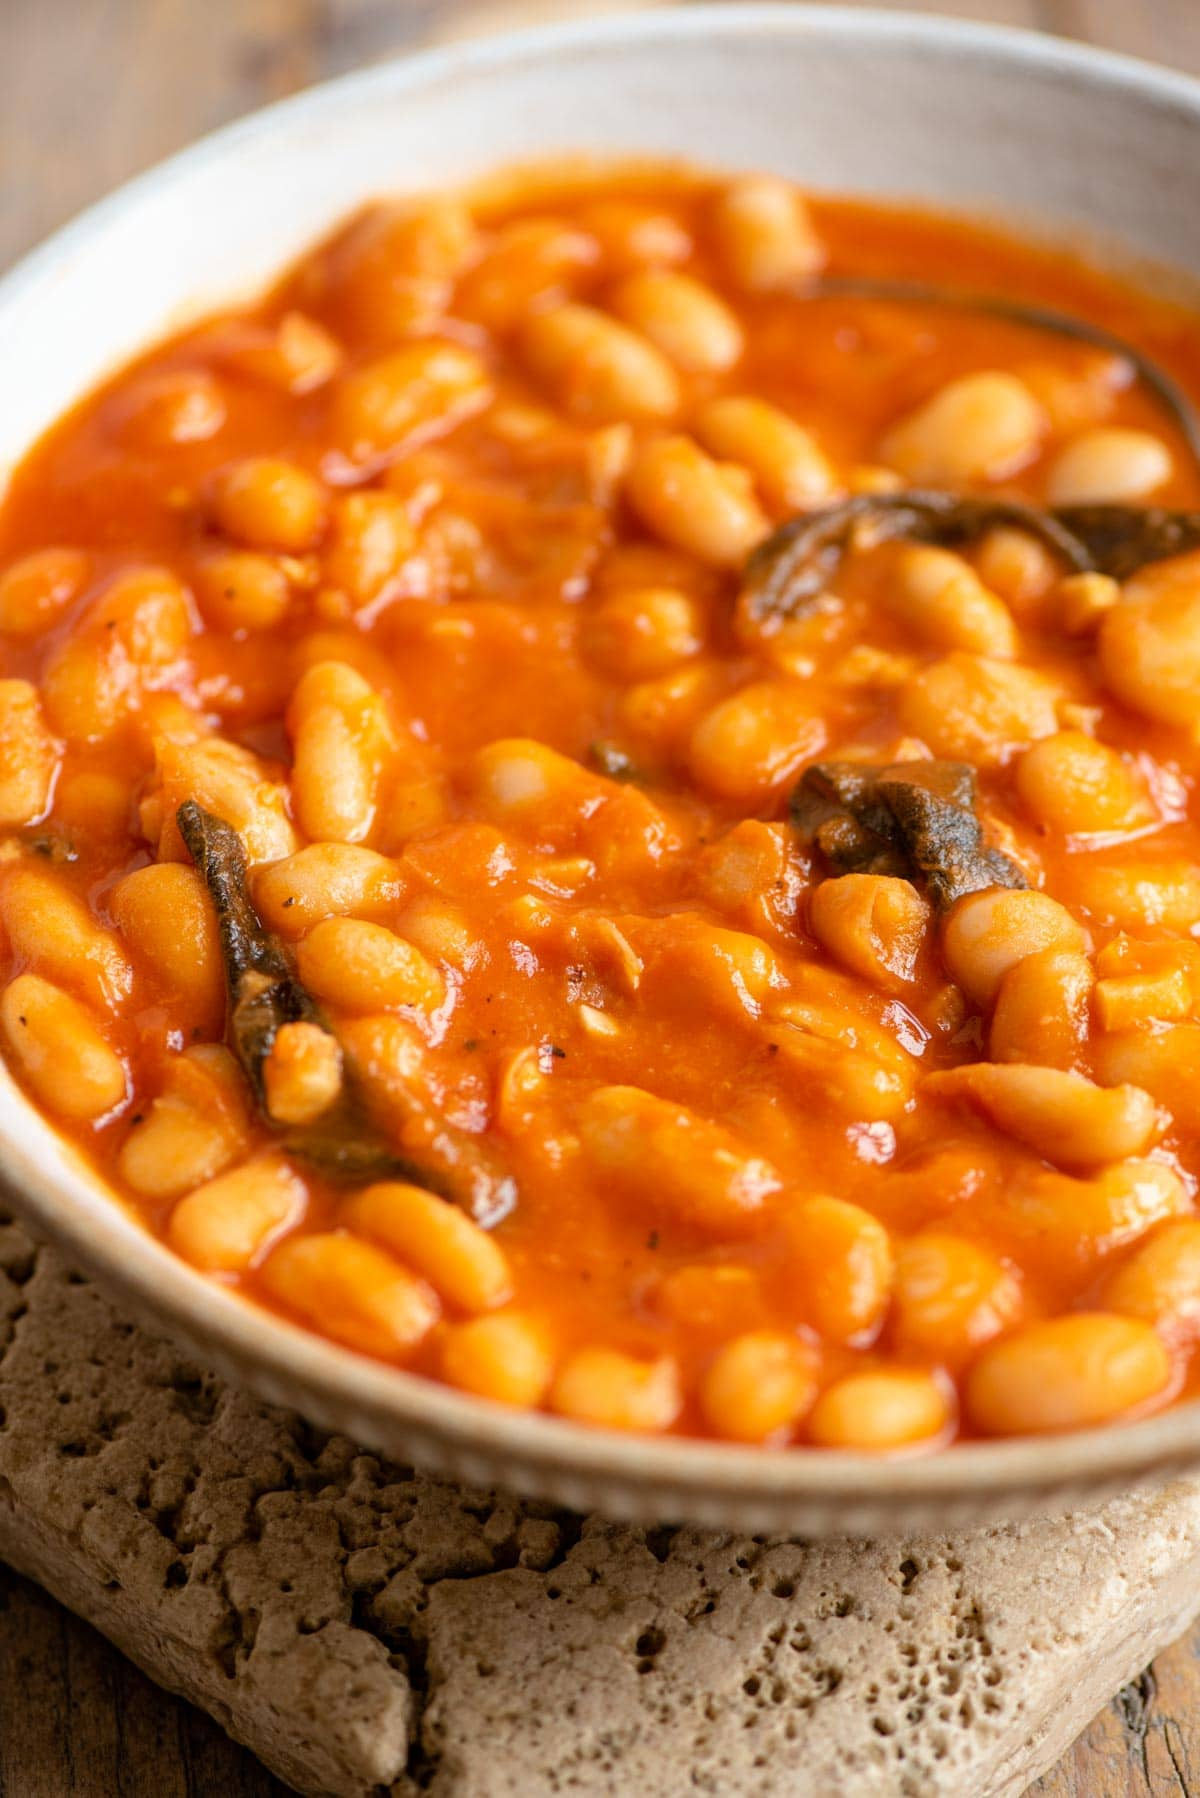 A close up of a bowl of beans in tomato sauce with sage leaves